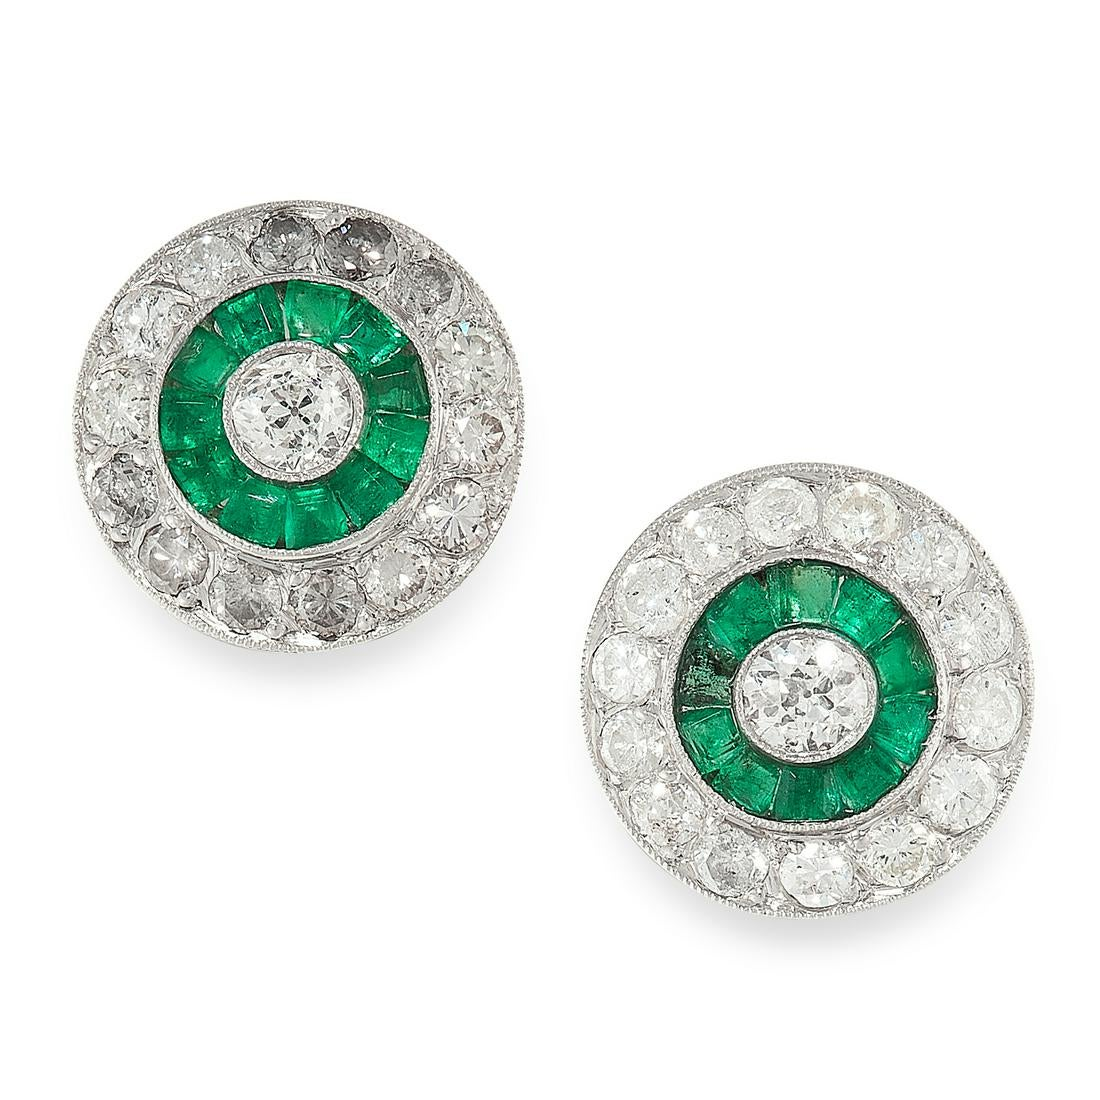 A PAIR OF EMERALD AND DIAMOND STUD EARRINGS of target design, each set at the centre with an old cut